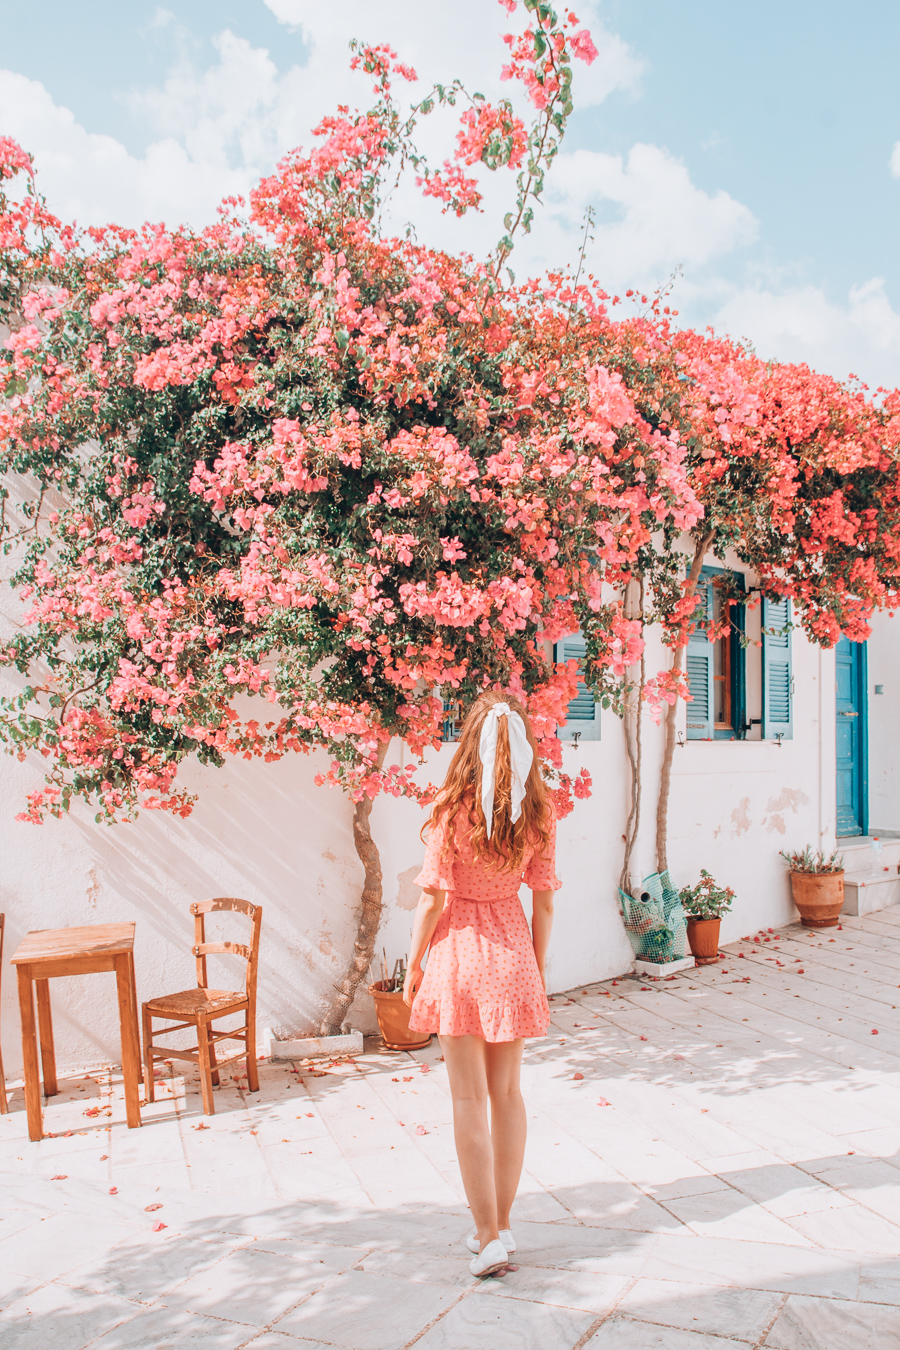 Building with flowers in Lefkes, Paros